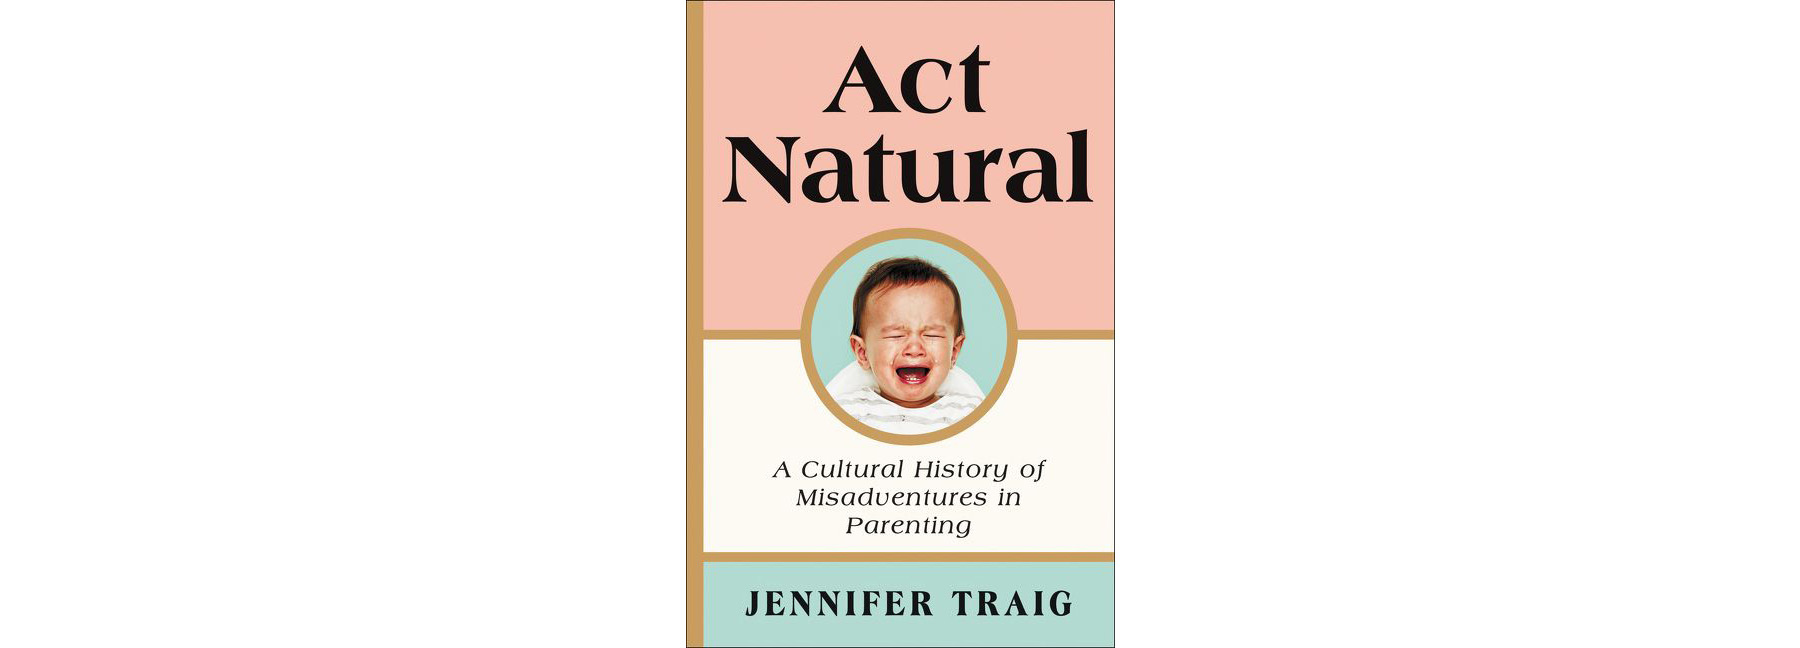 Cover of Act Natural, by Jennifer Traig